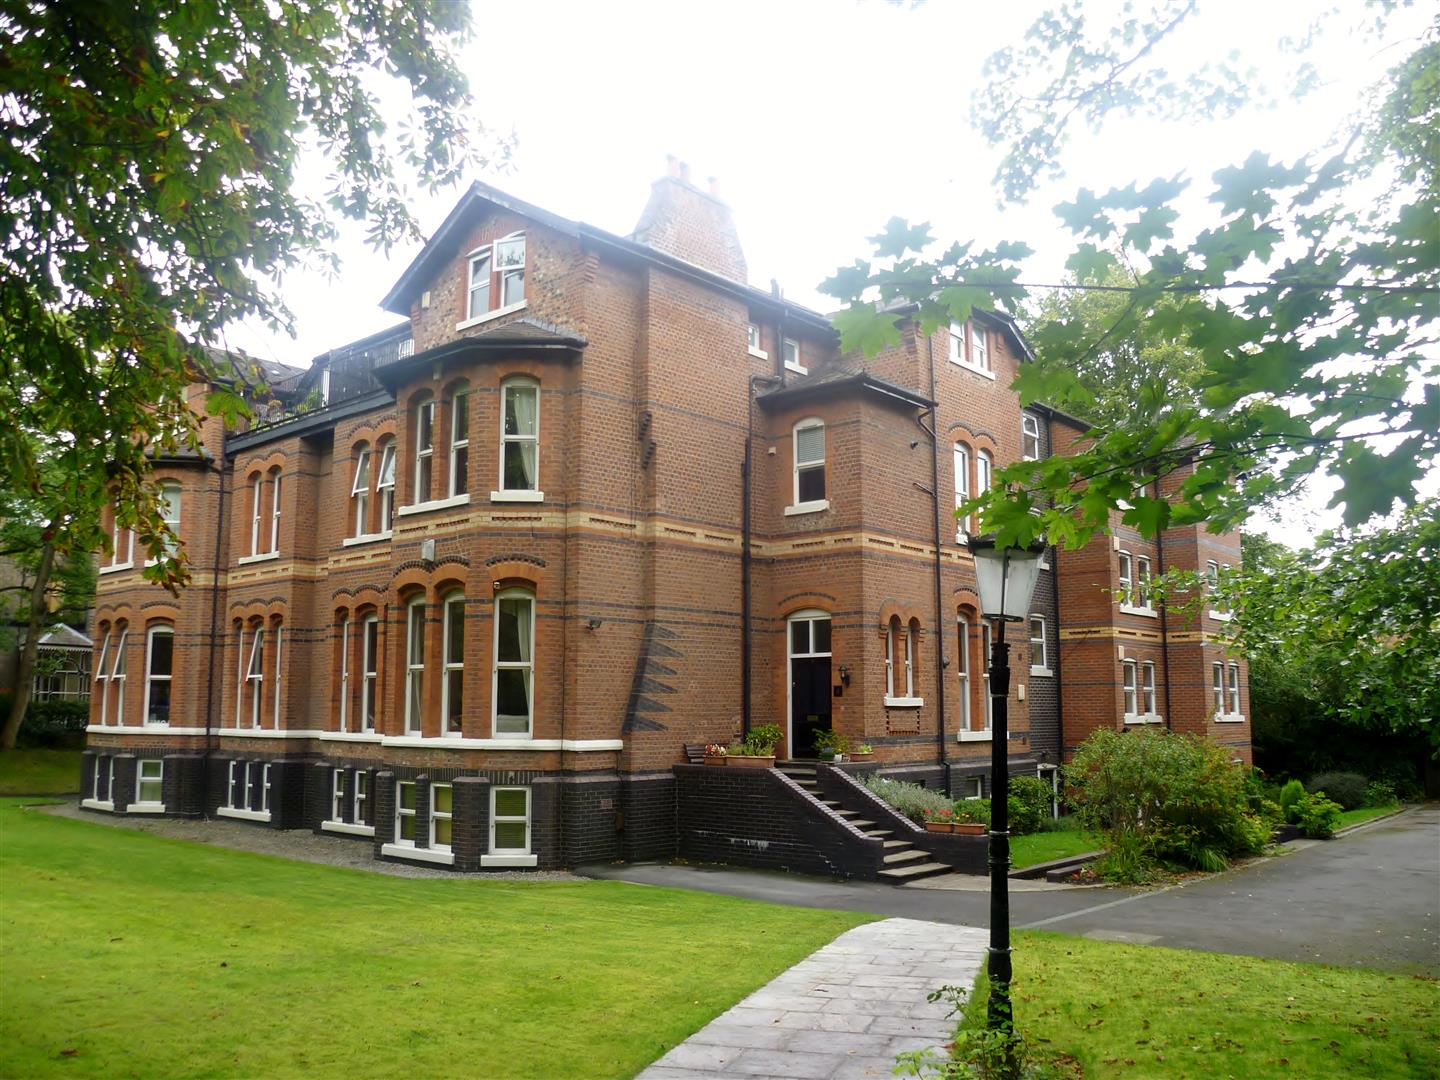 2 Bedrooms Flat for sale in Ellesmere Road, Eccles, Manchester